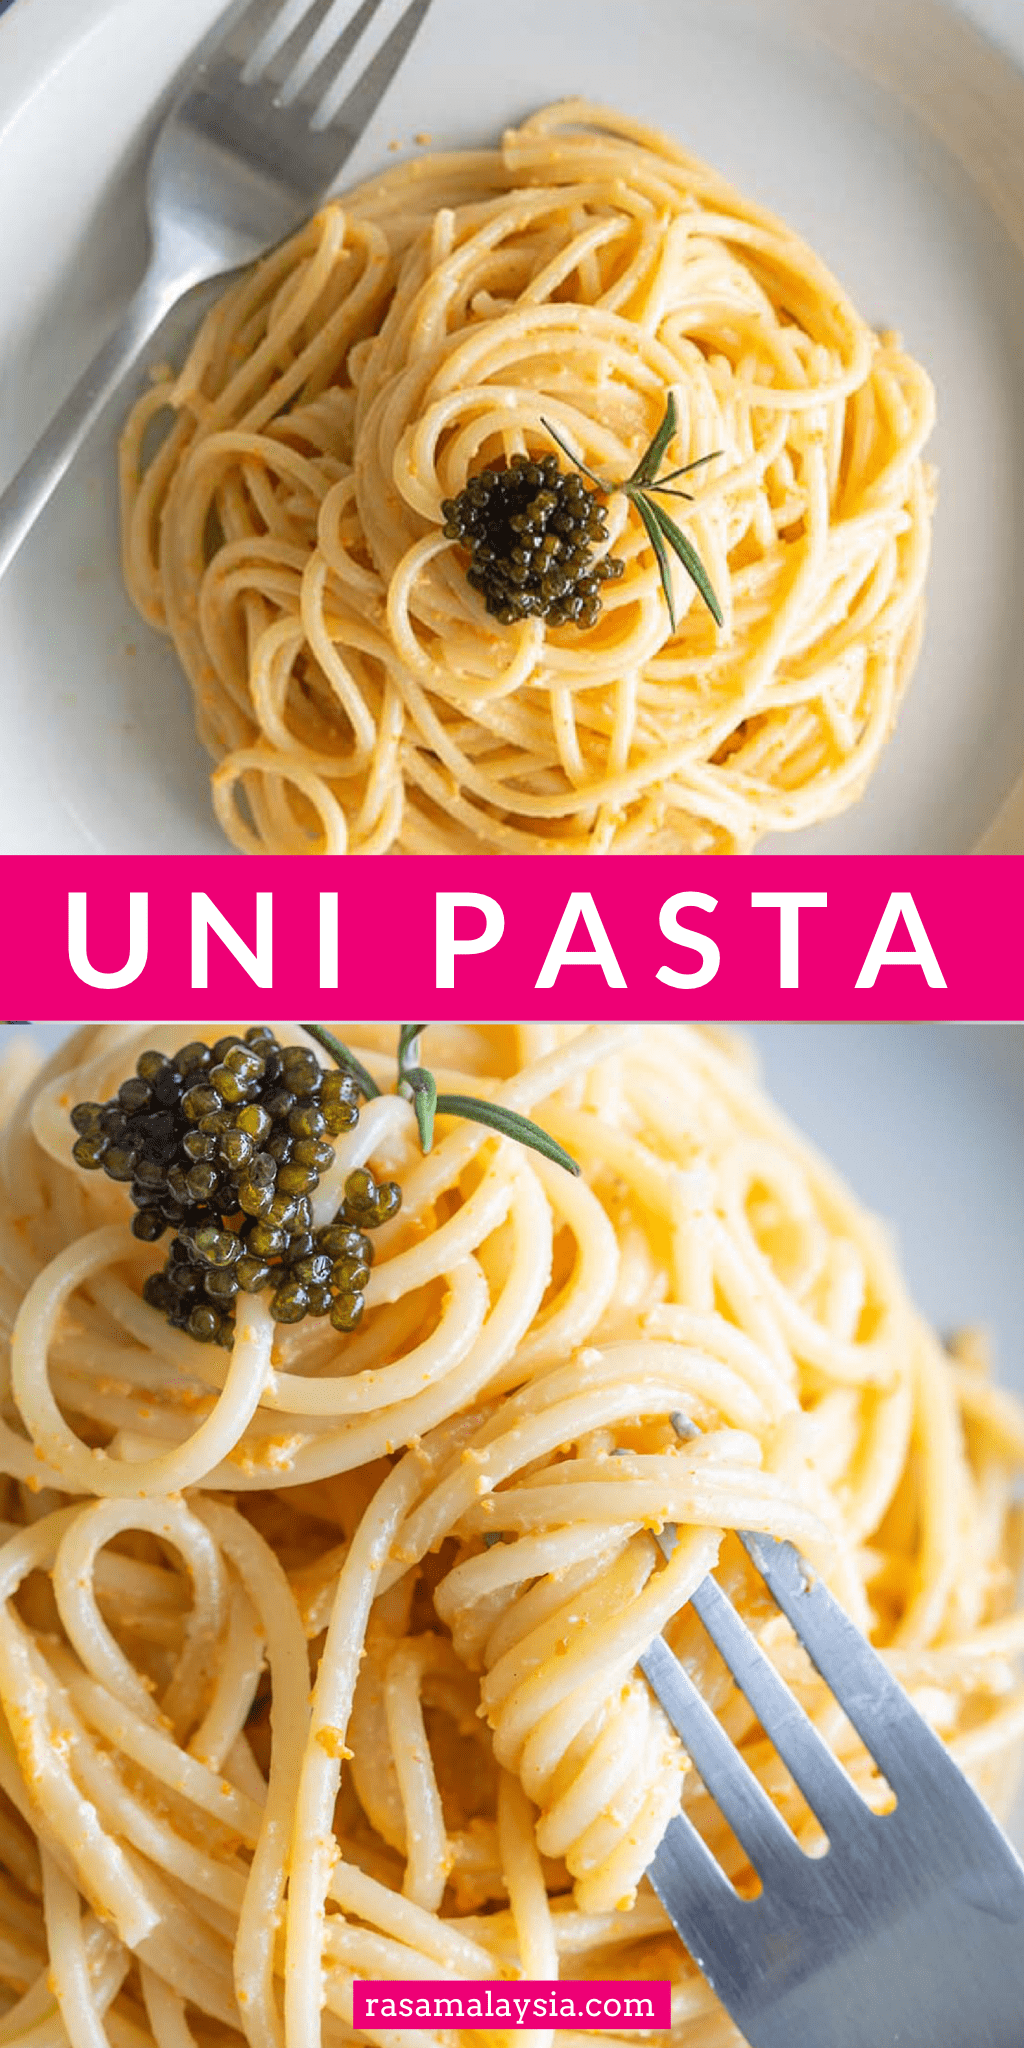 Rich, creamy and delicious uni pasta made with sea urchins. The uni or sea urchin lend a remarkable taste to this uni pasta. Tried and tested recipe.